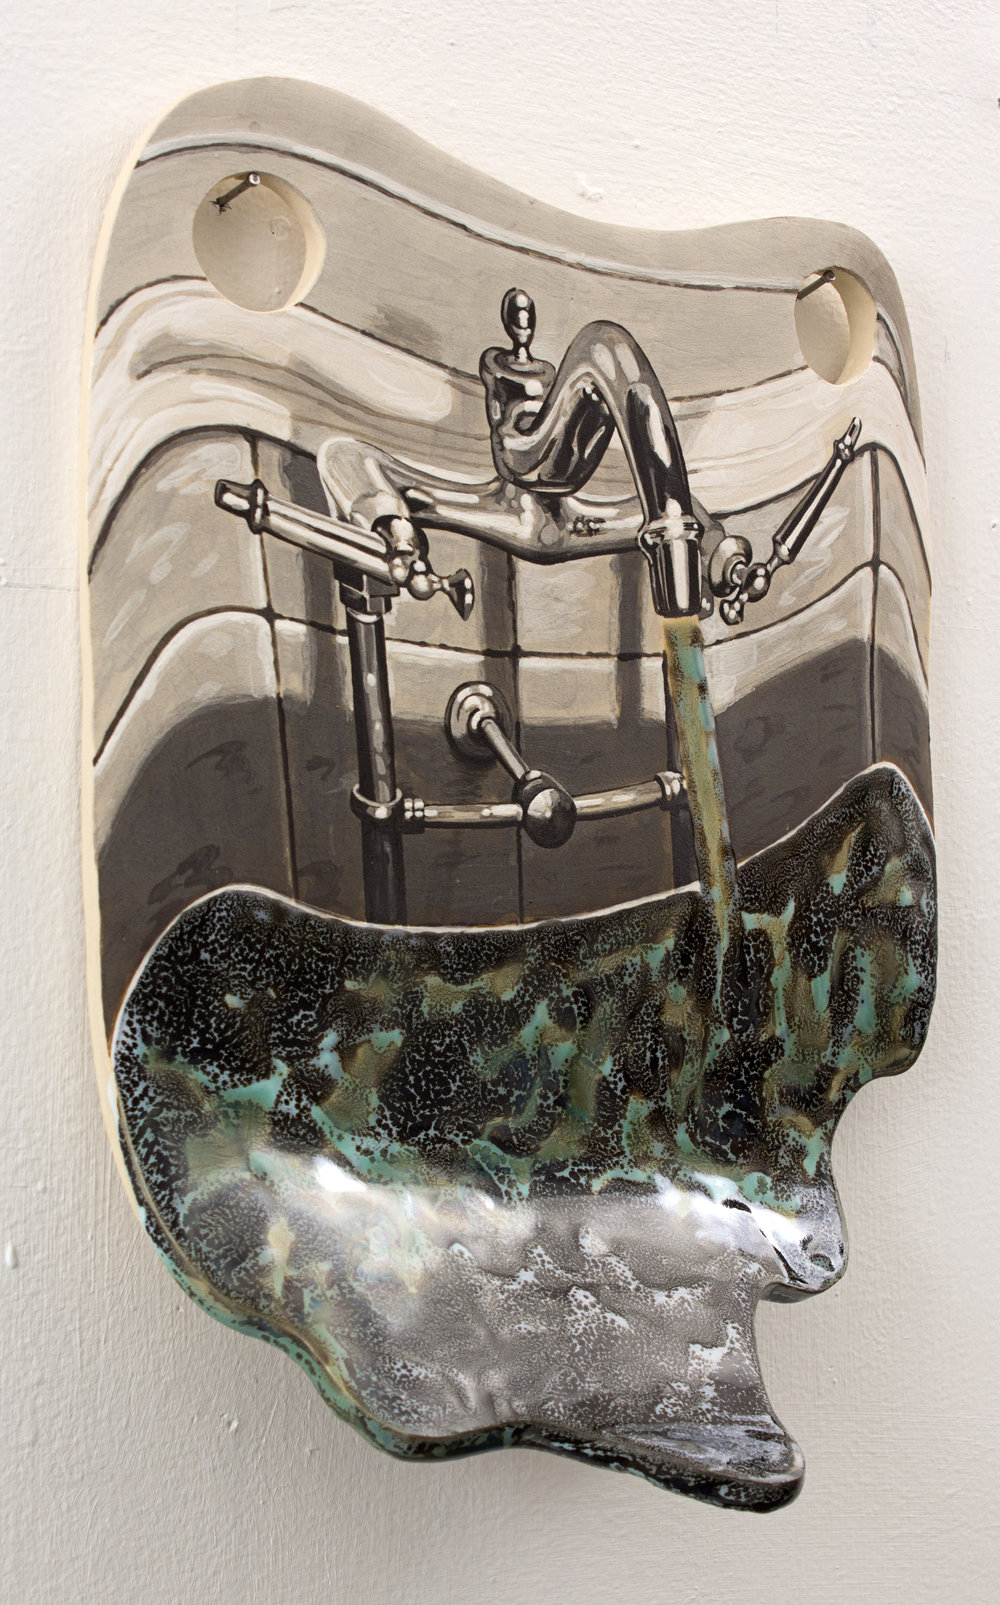 Sink  , 2016. Glazed ceramic, 12 x 9 inches